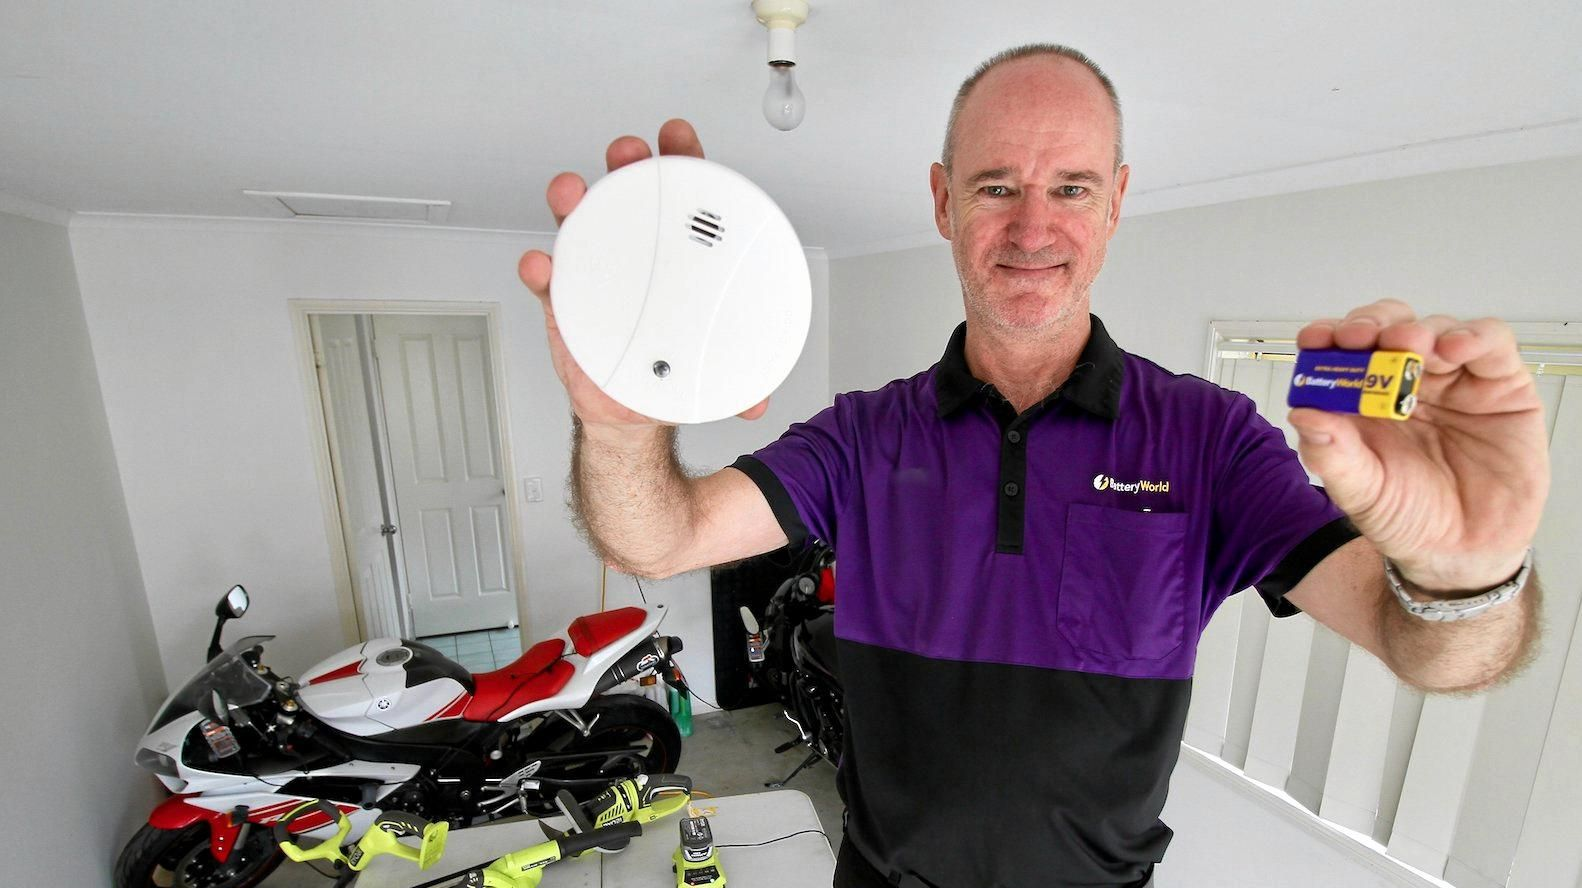 FREE FOR OLD: Battery World Gladstone staff member David Atkinson. The local business will be swapping old smoke alarm batteries for new ones for free.